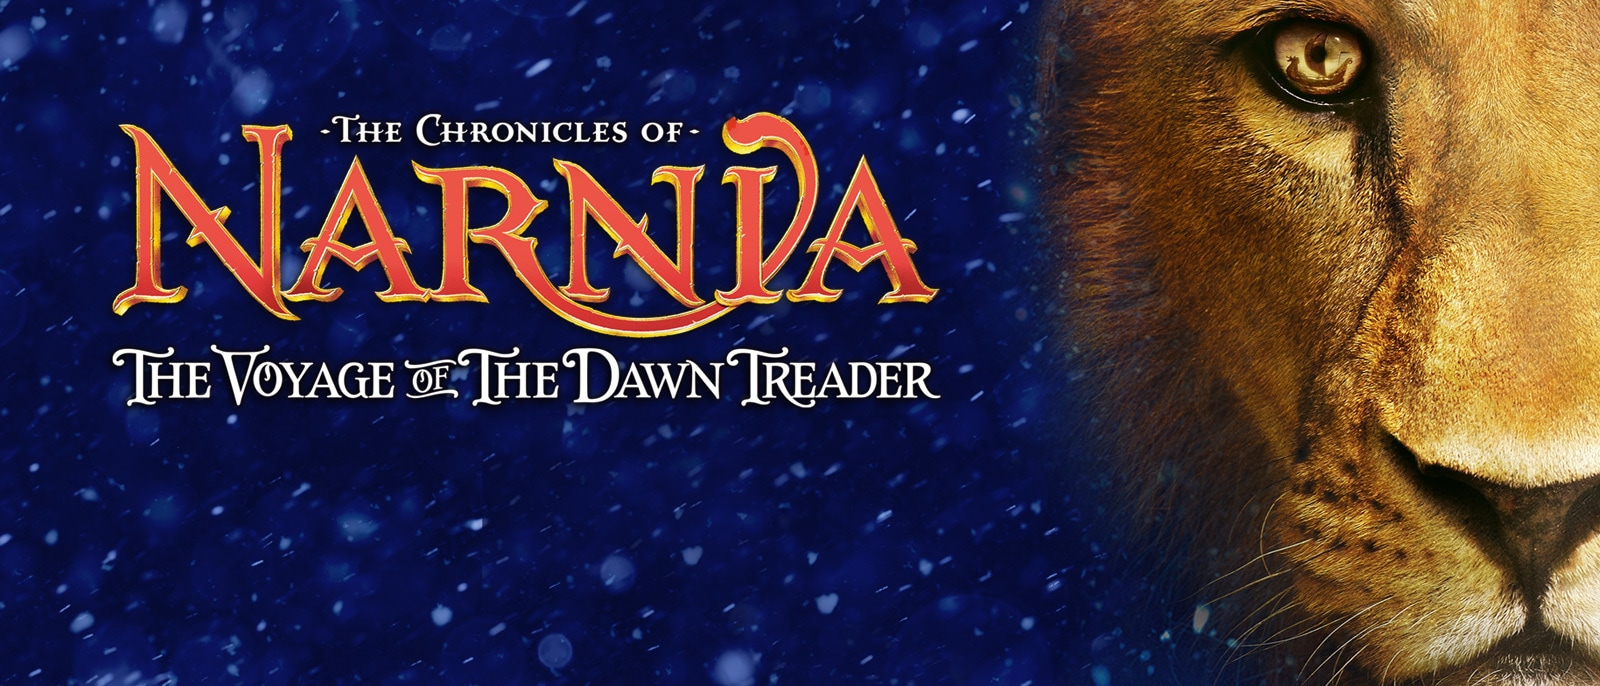 The Chronicles of Narnia: The Voyage of the Dawn Treader Hero